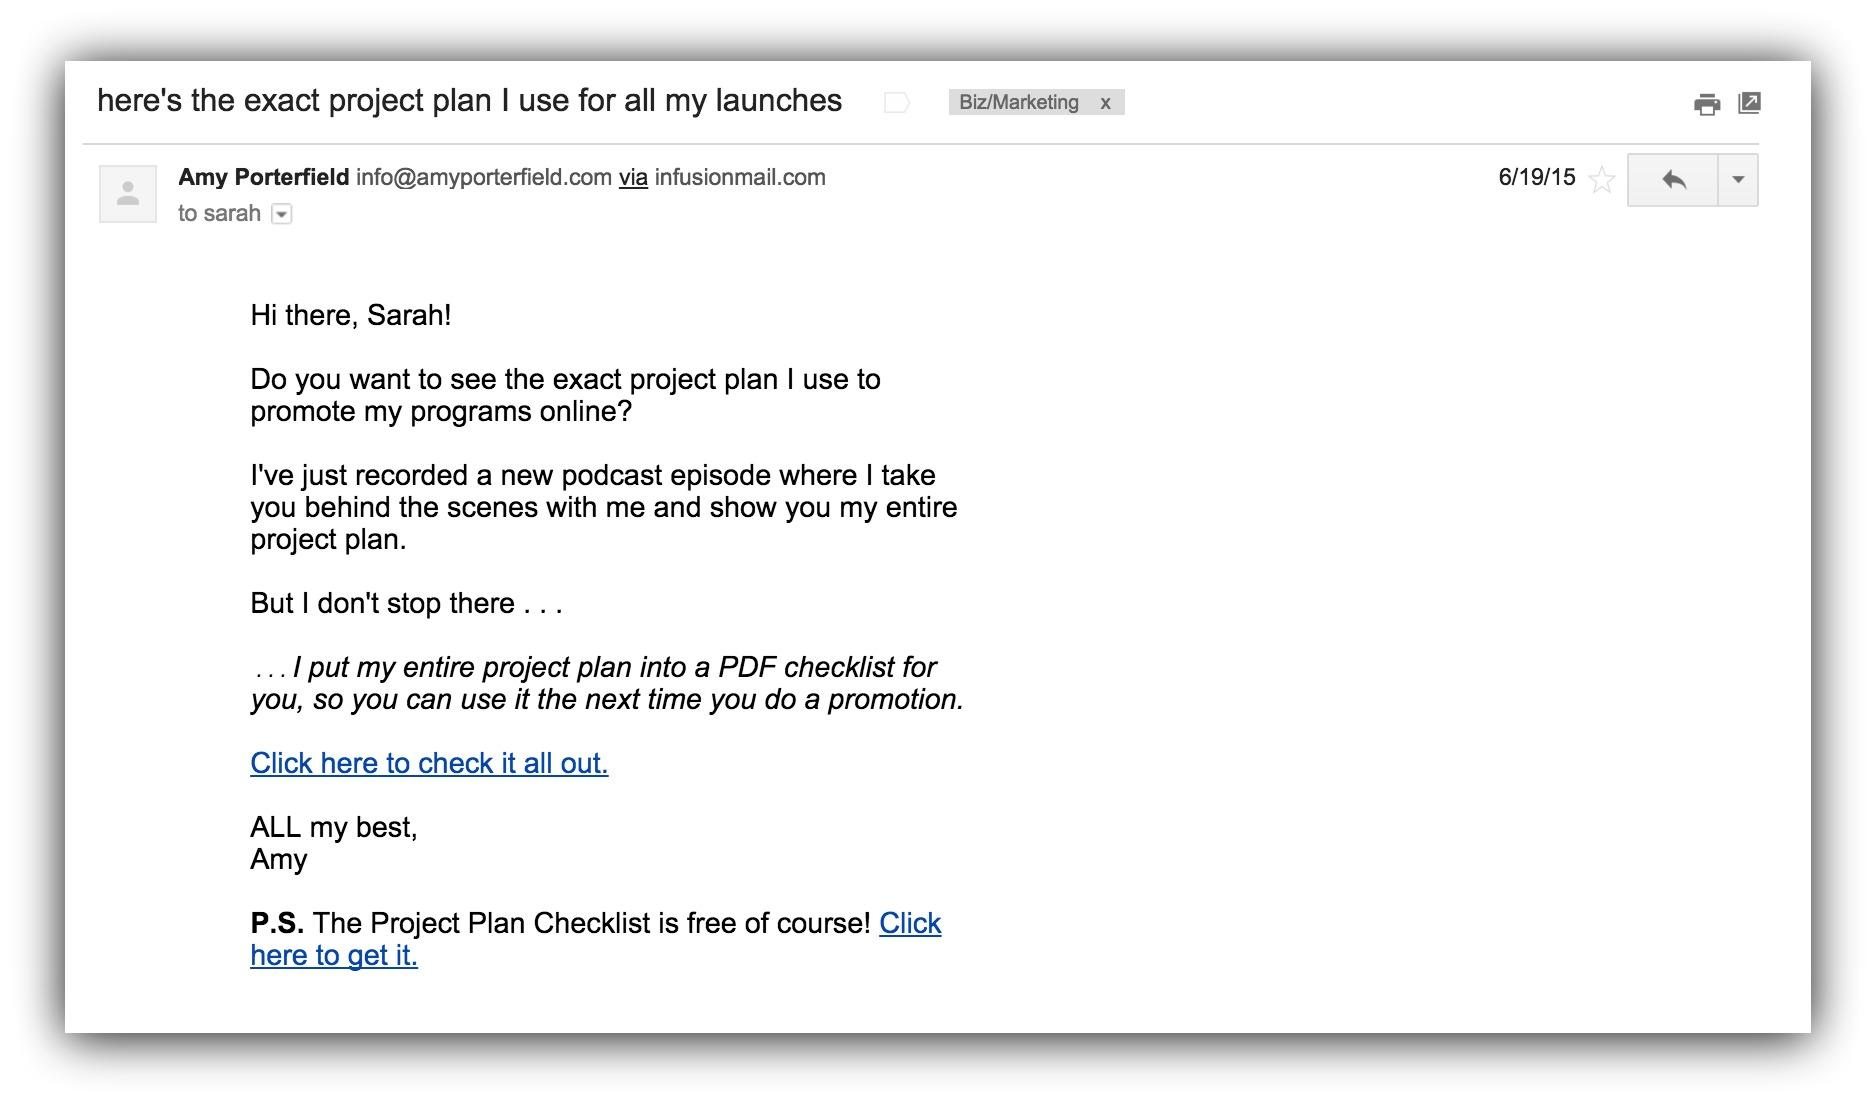 Screenshot of an email sent by Amy Porterfield